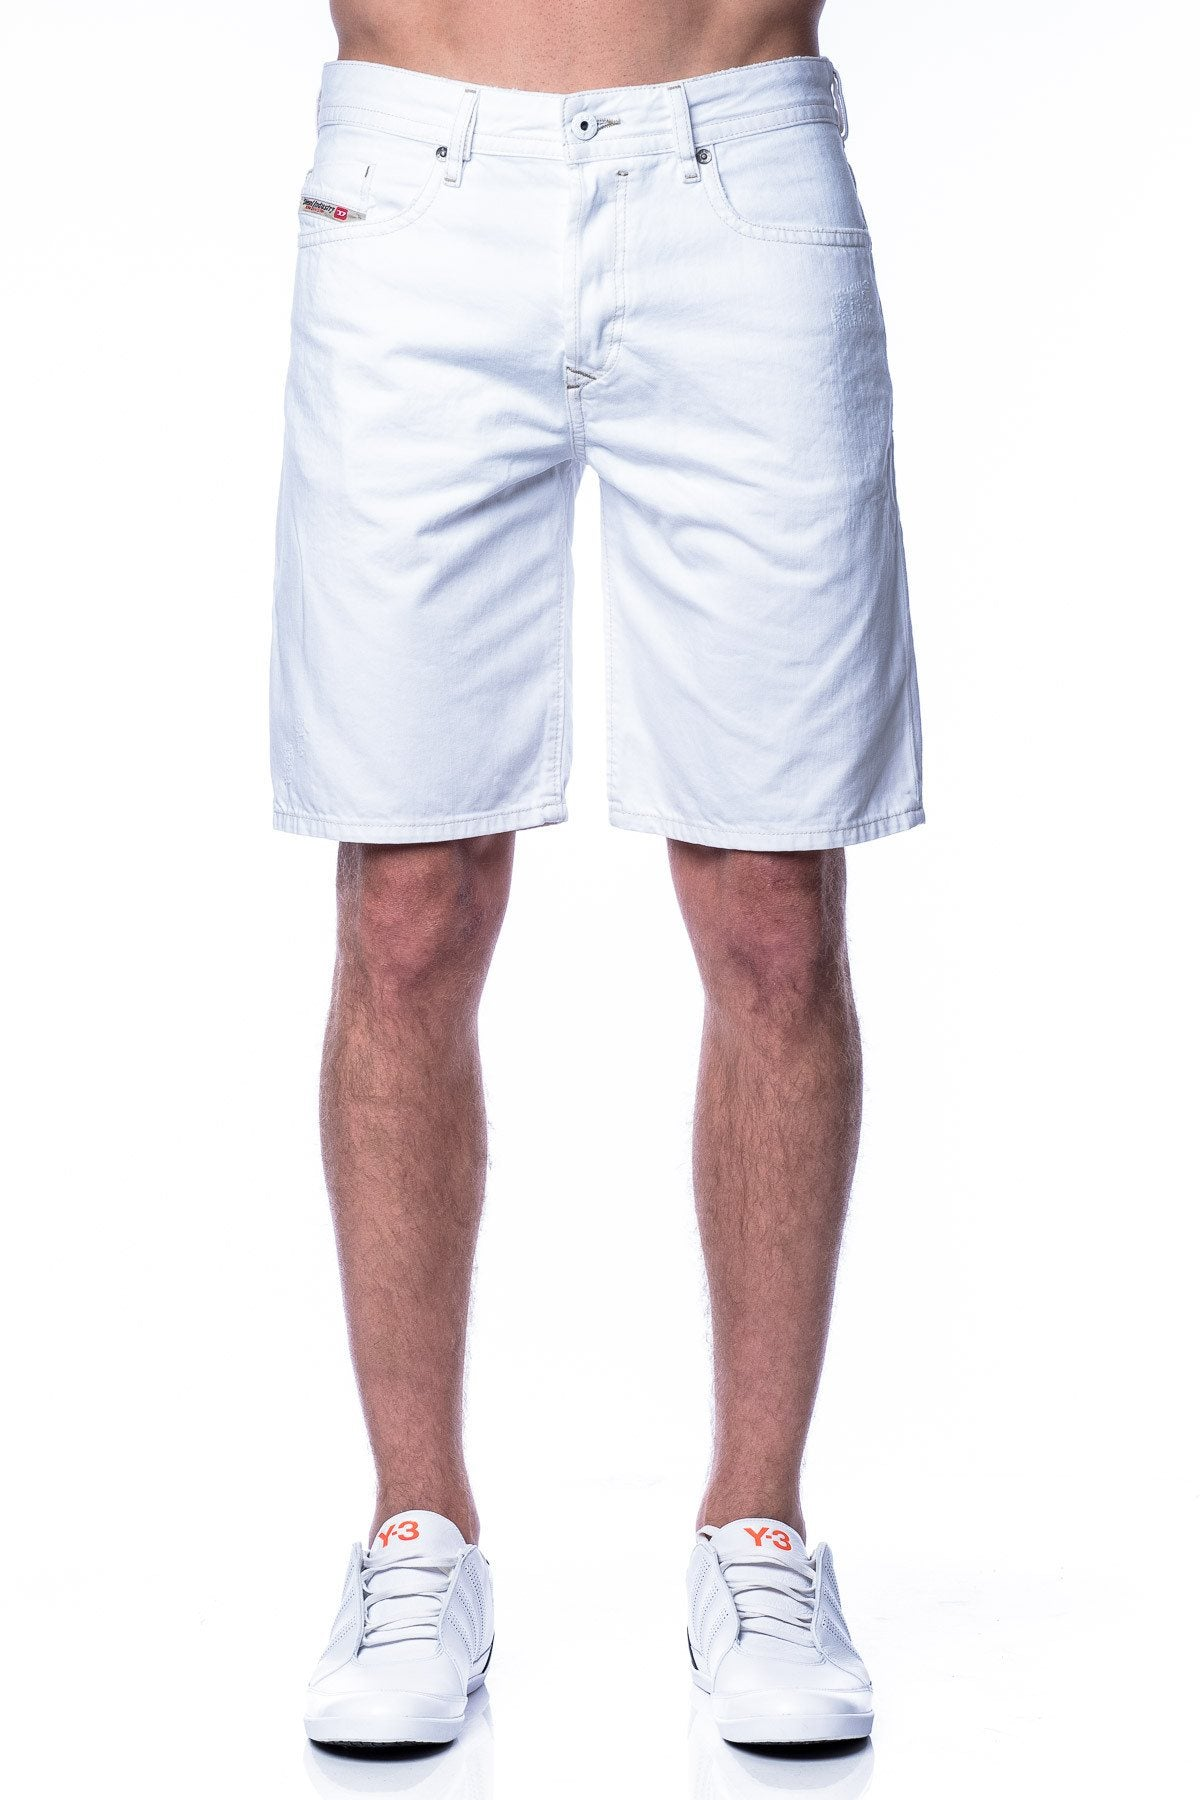 Shorts - Diesel Bustshort White Denim Shorts